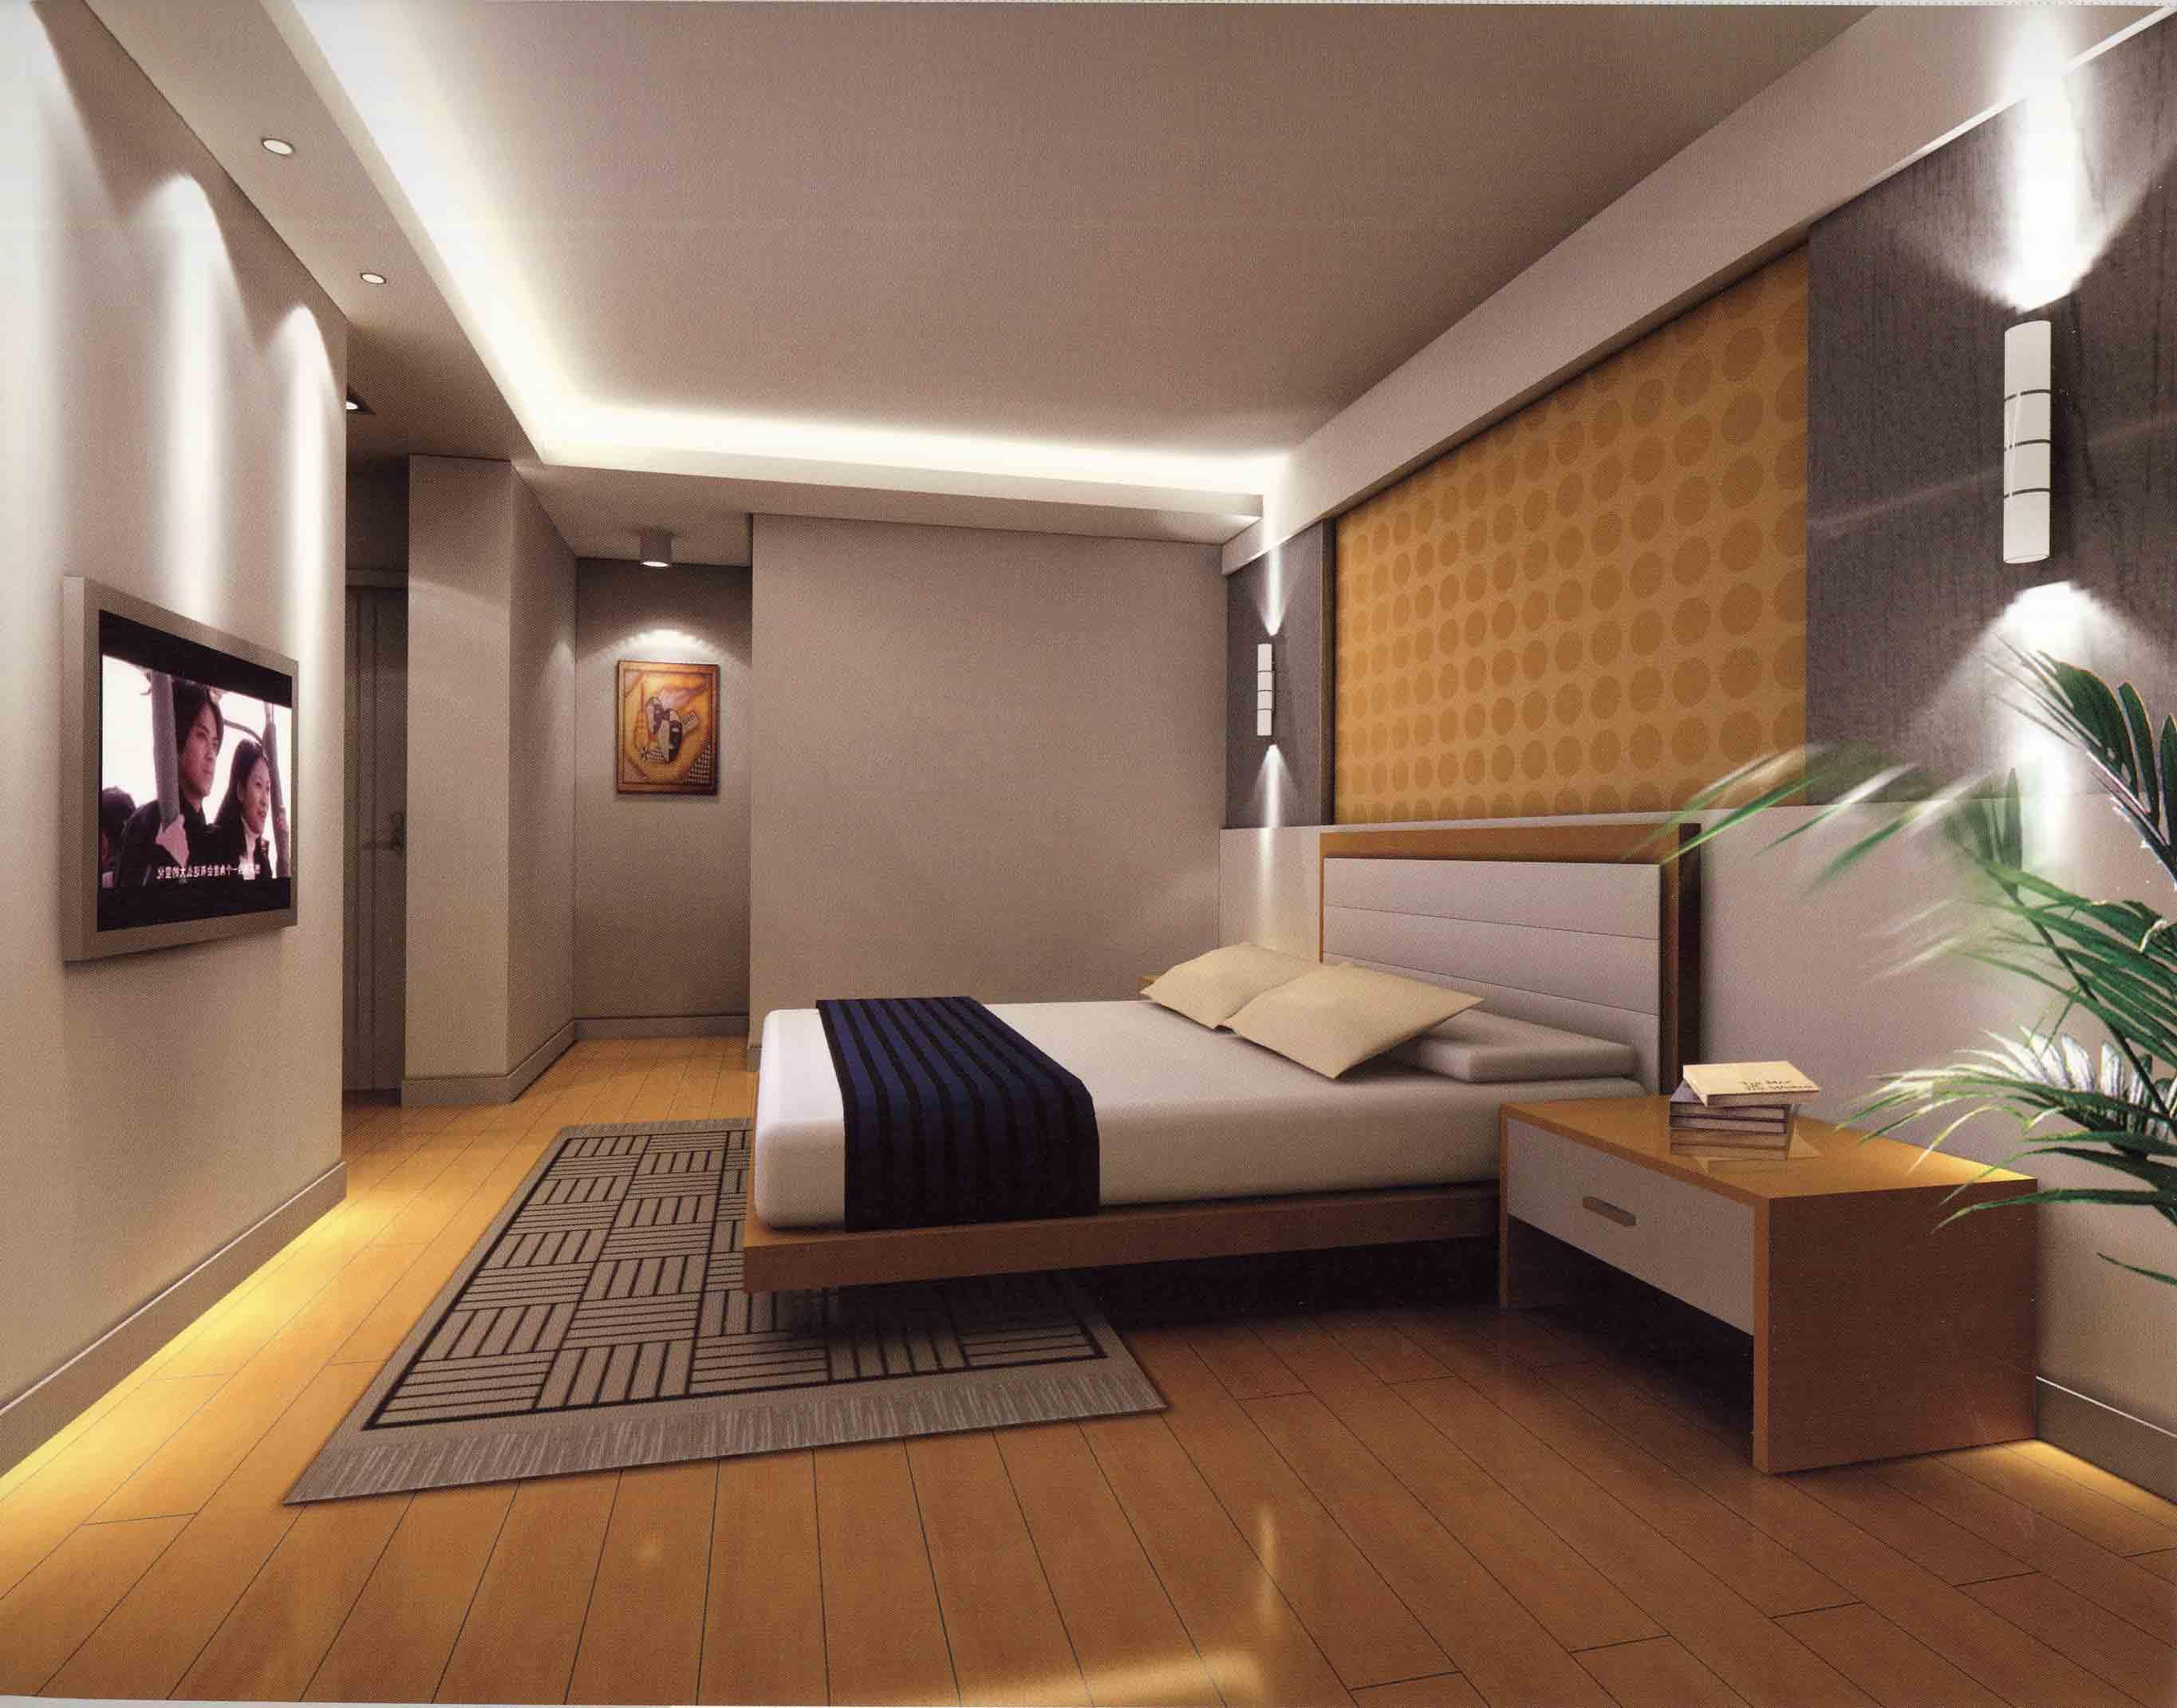 Bedroom Design Gallery For Inspiration